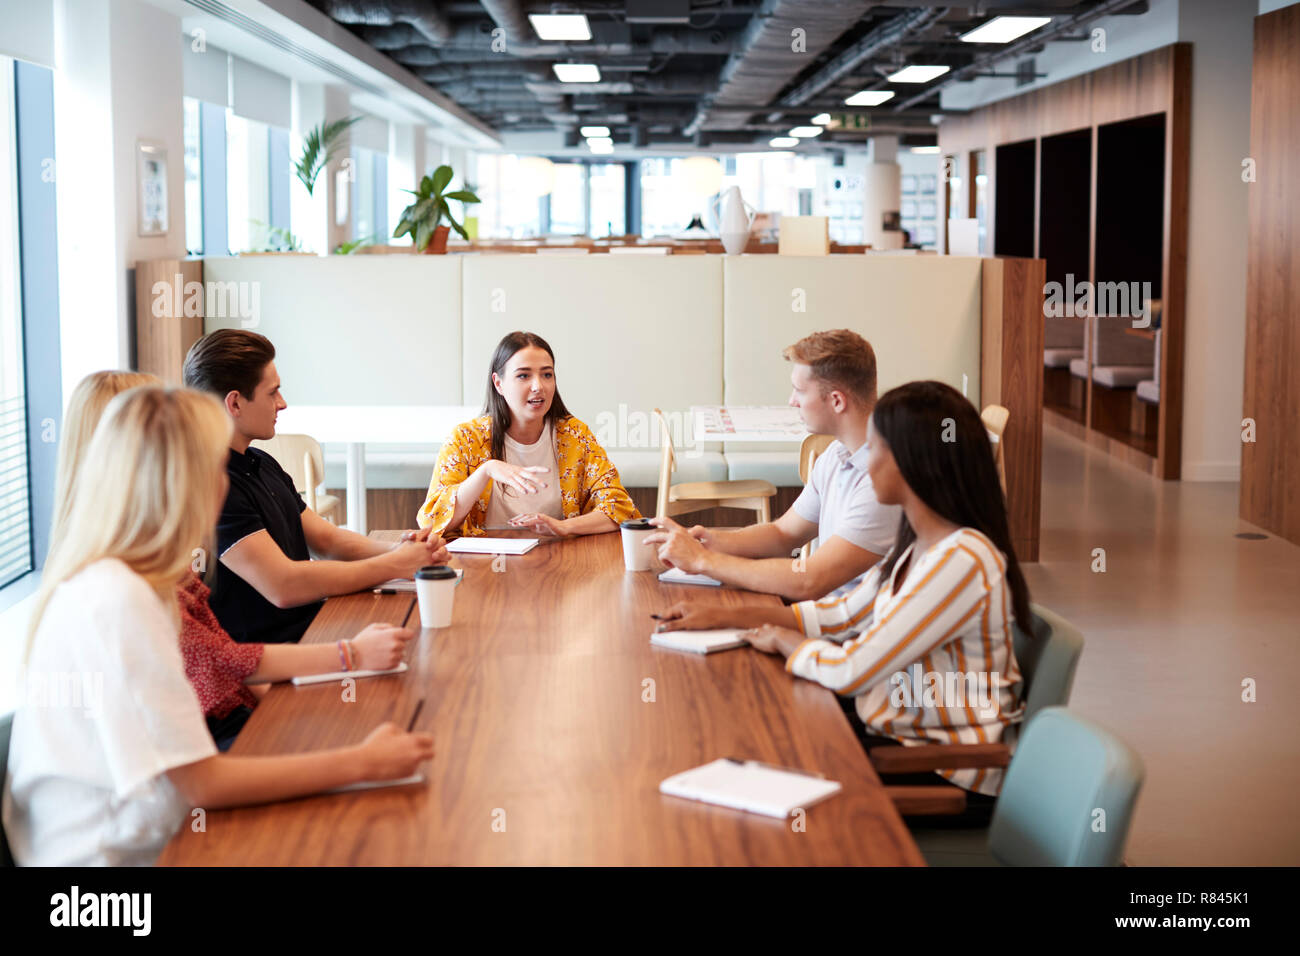 Group Of Young Candidates Sitting Around Table And Collaborating On Task At Business Graduate Recruitment Assessment Day - Stock Image